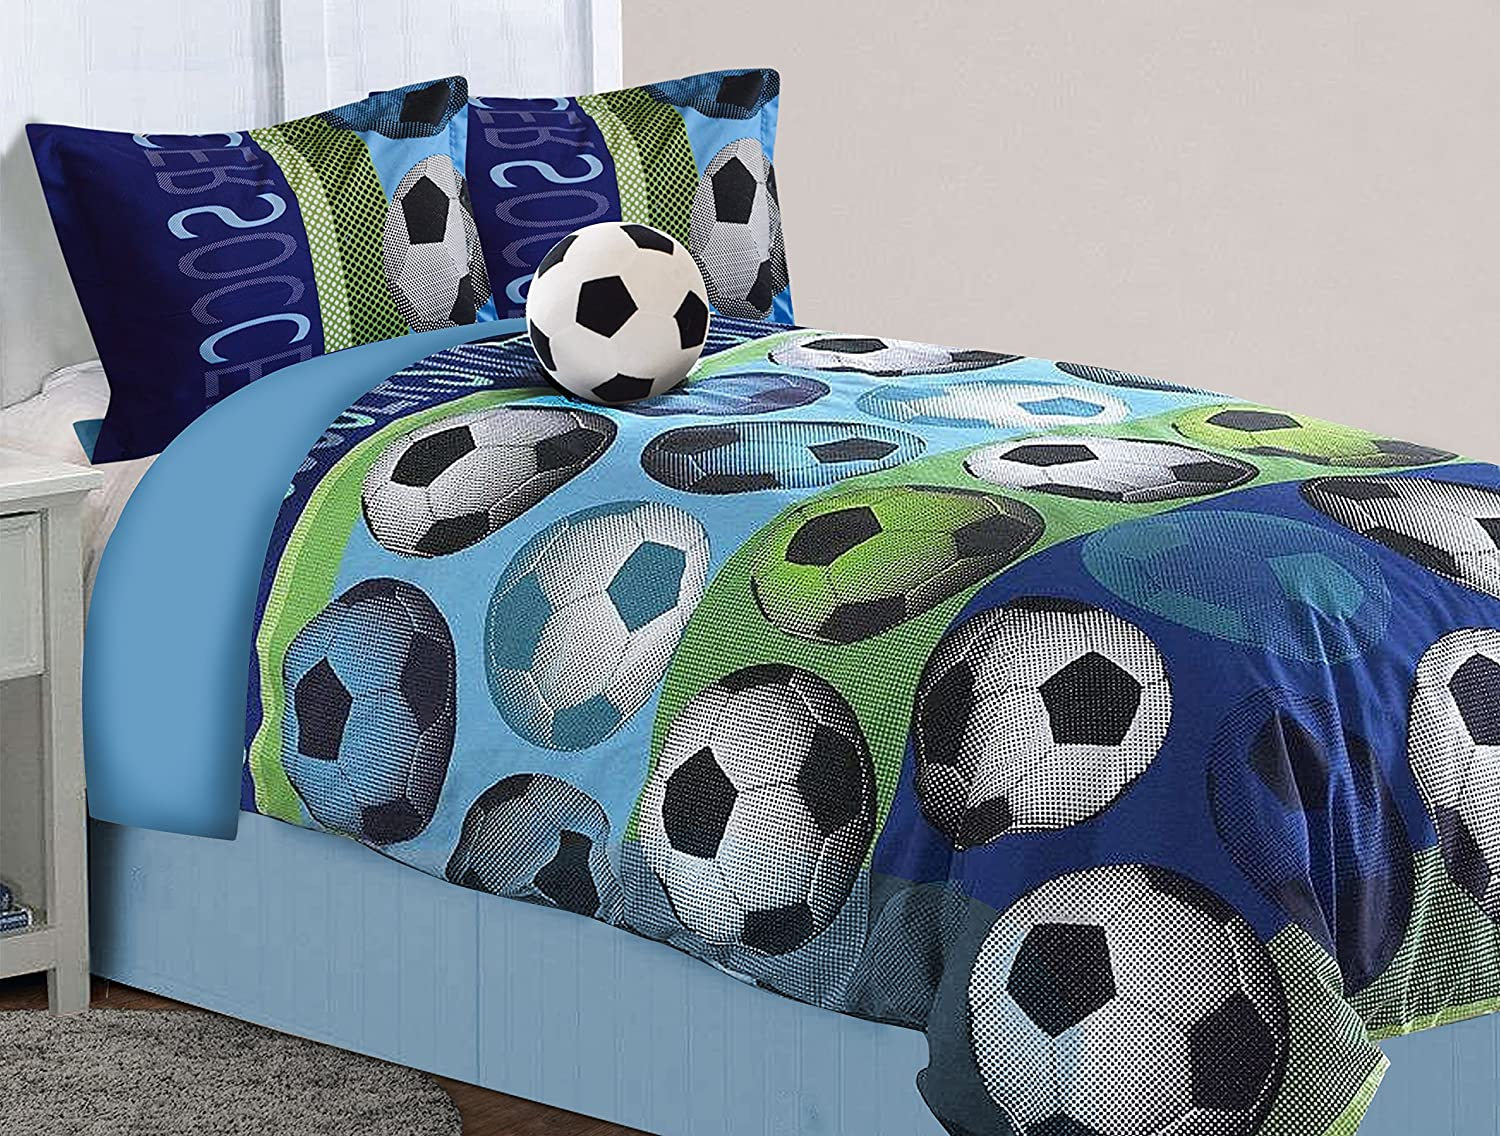 All American Collection 4 Piece Full Size Soccer Comforter Set with Furry Friend 4 Pc Full Size